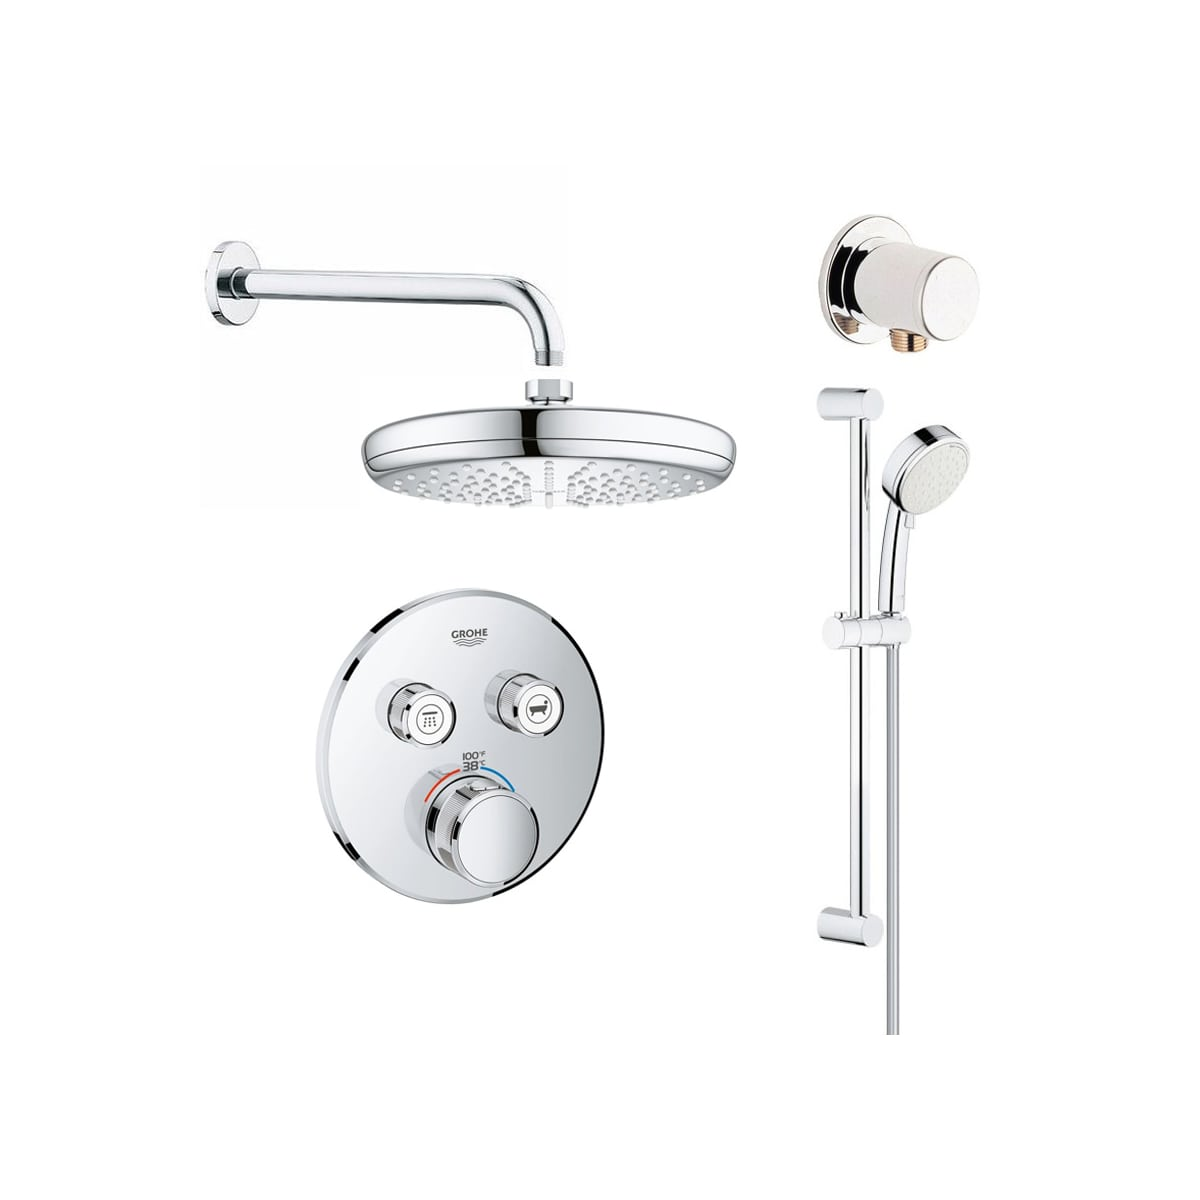 Grohe Gss Grohtherm Cir 05 A